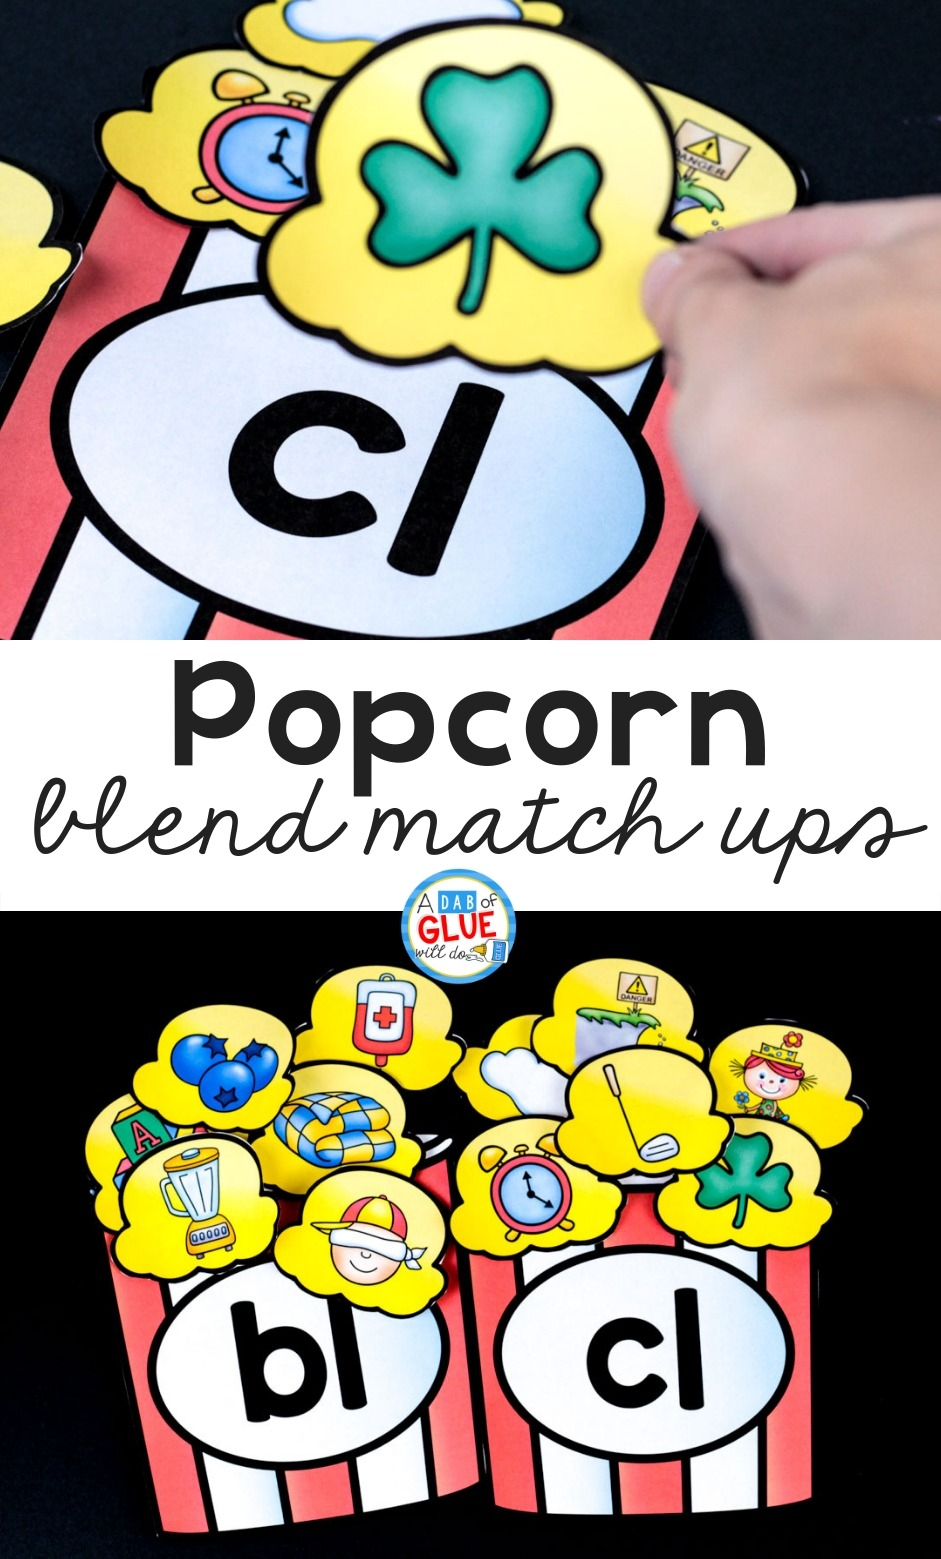 Popcorn Initial Sound and Number Match-Ups